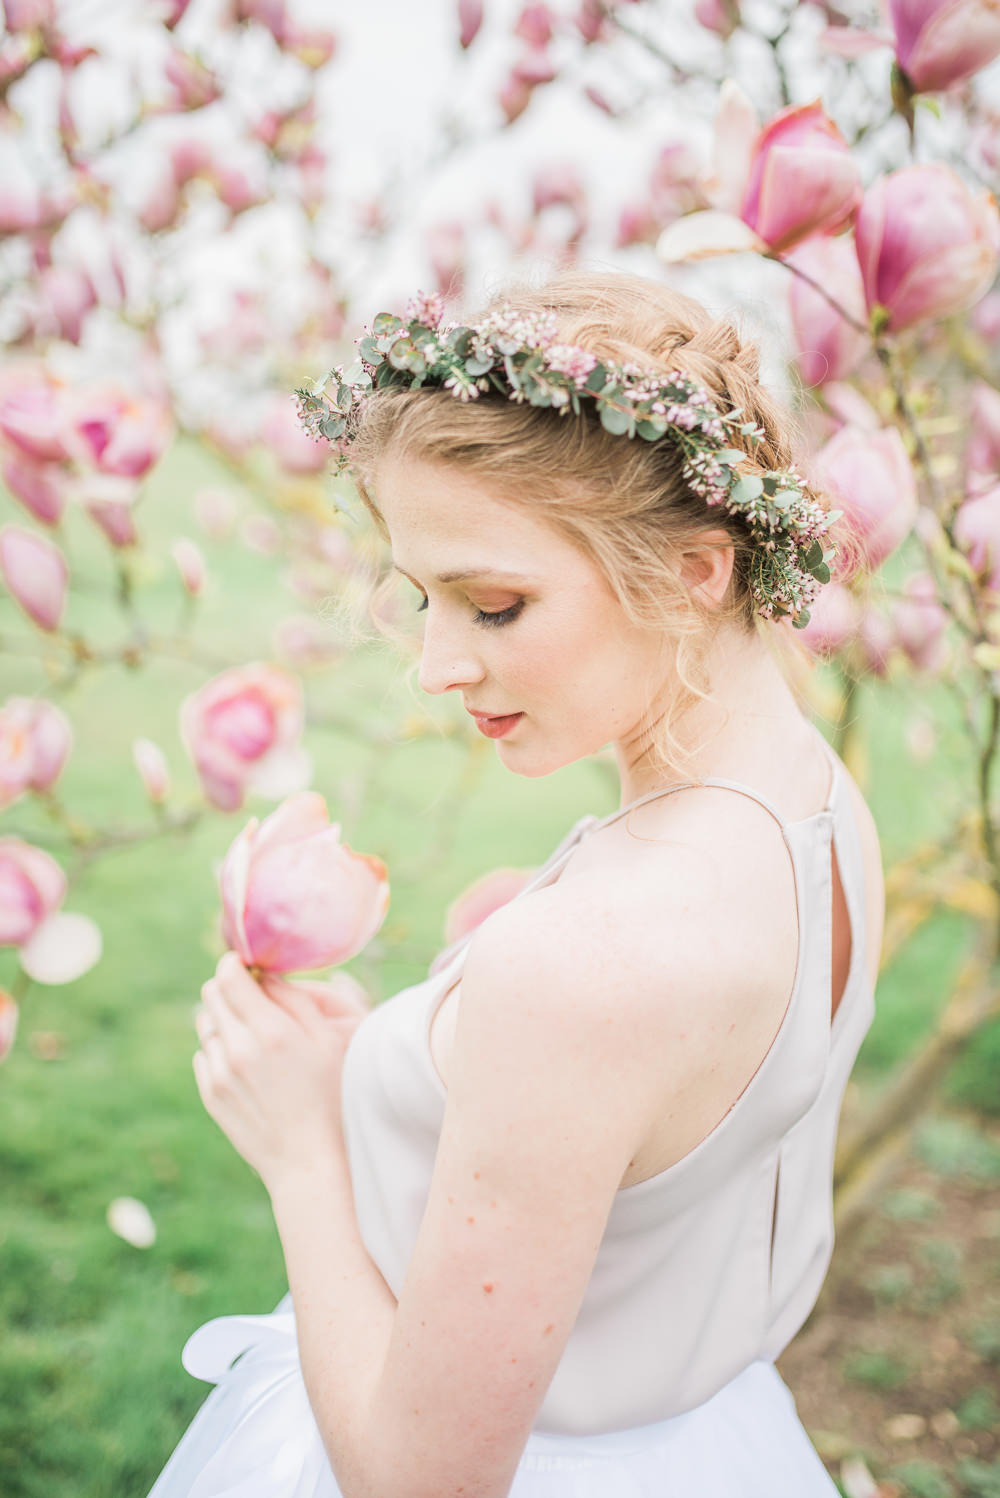 Bride Bridal Bridesmaid Hair Style Up Do Flower Crown Springtime Bridal Shower Ideas Hen Party Laura Jane Photography